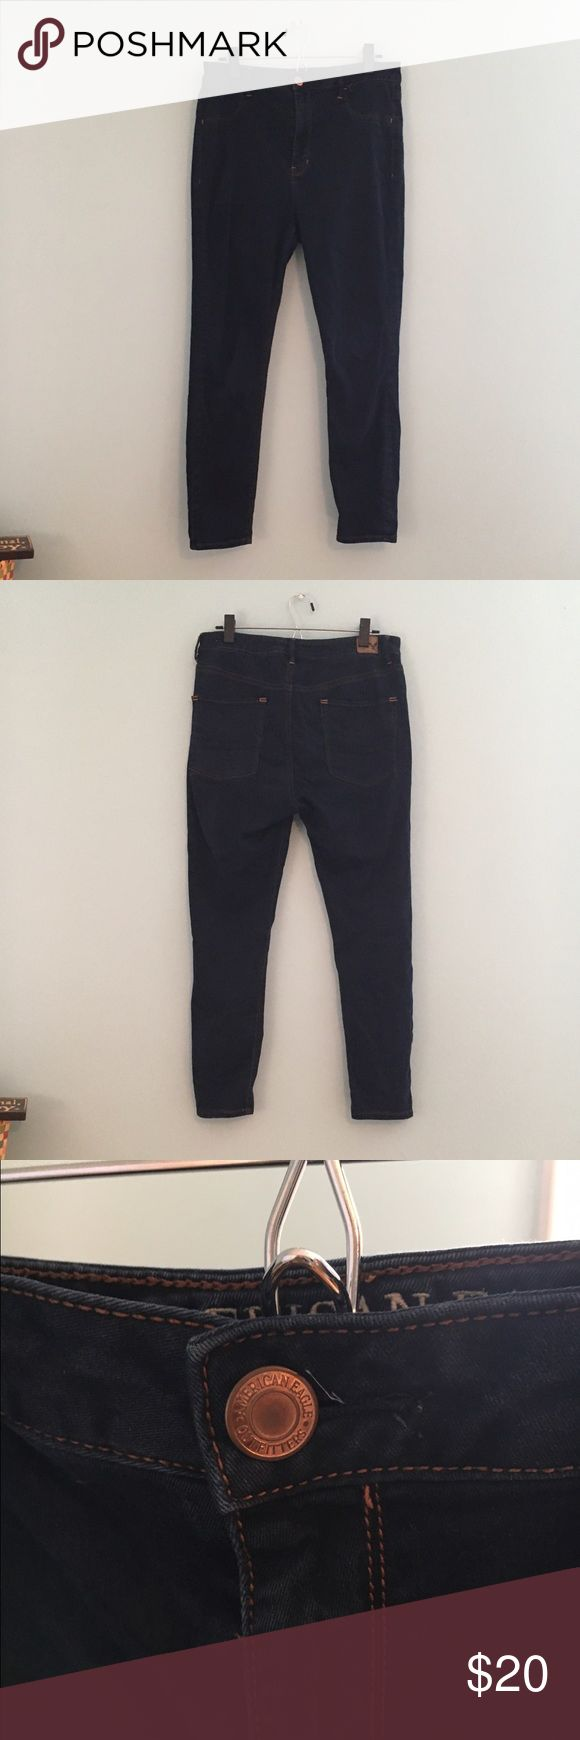 American Eagle Outfitters Sky High Jegging AEO jegging. Super high waisted. Dark wash. Very soft and stretchy. Worn quite a few times but they still have lots of life left in them. Looks great with a crop top and cardigan, or anything really. American Eagle Outfitters Pants Leggings